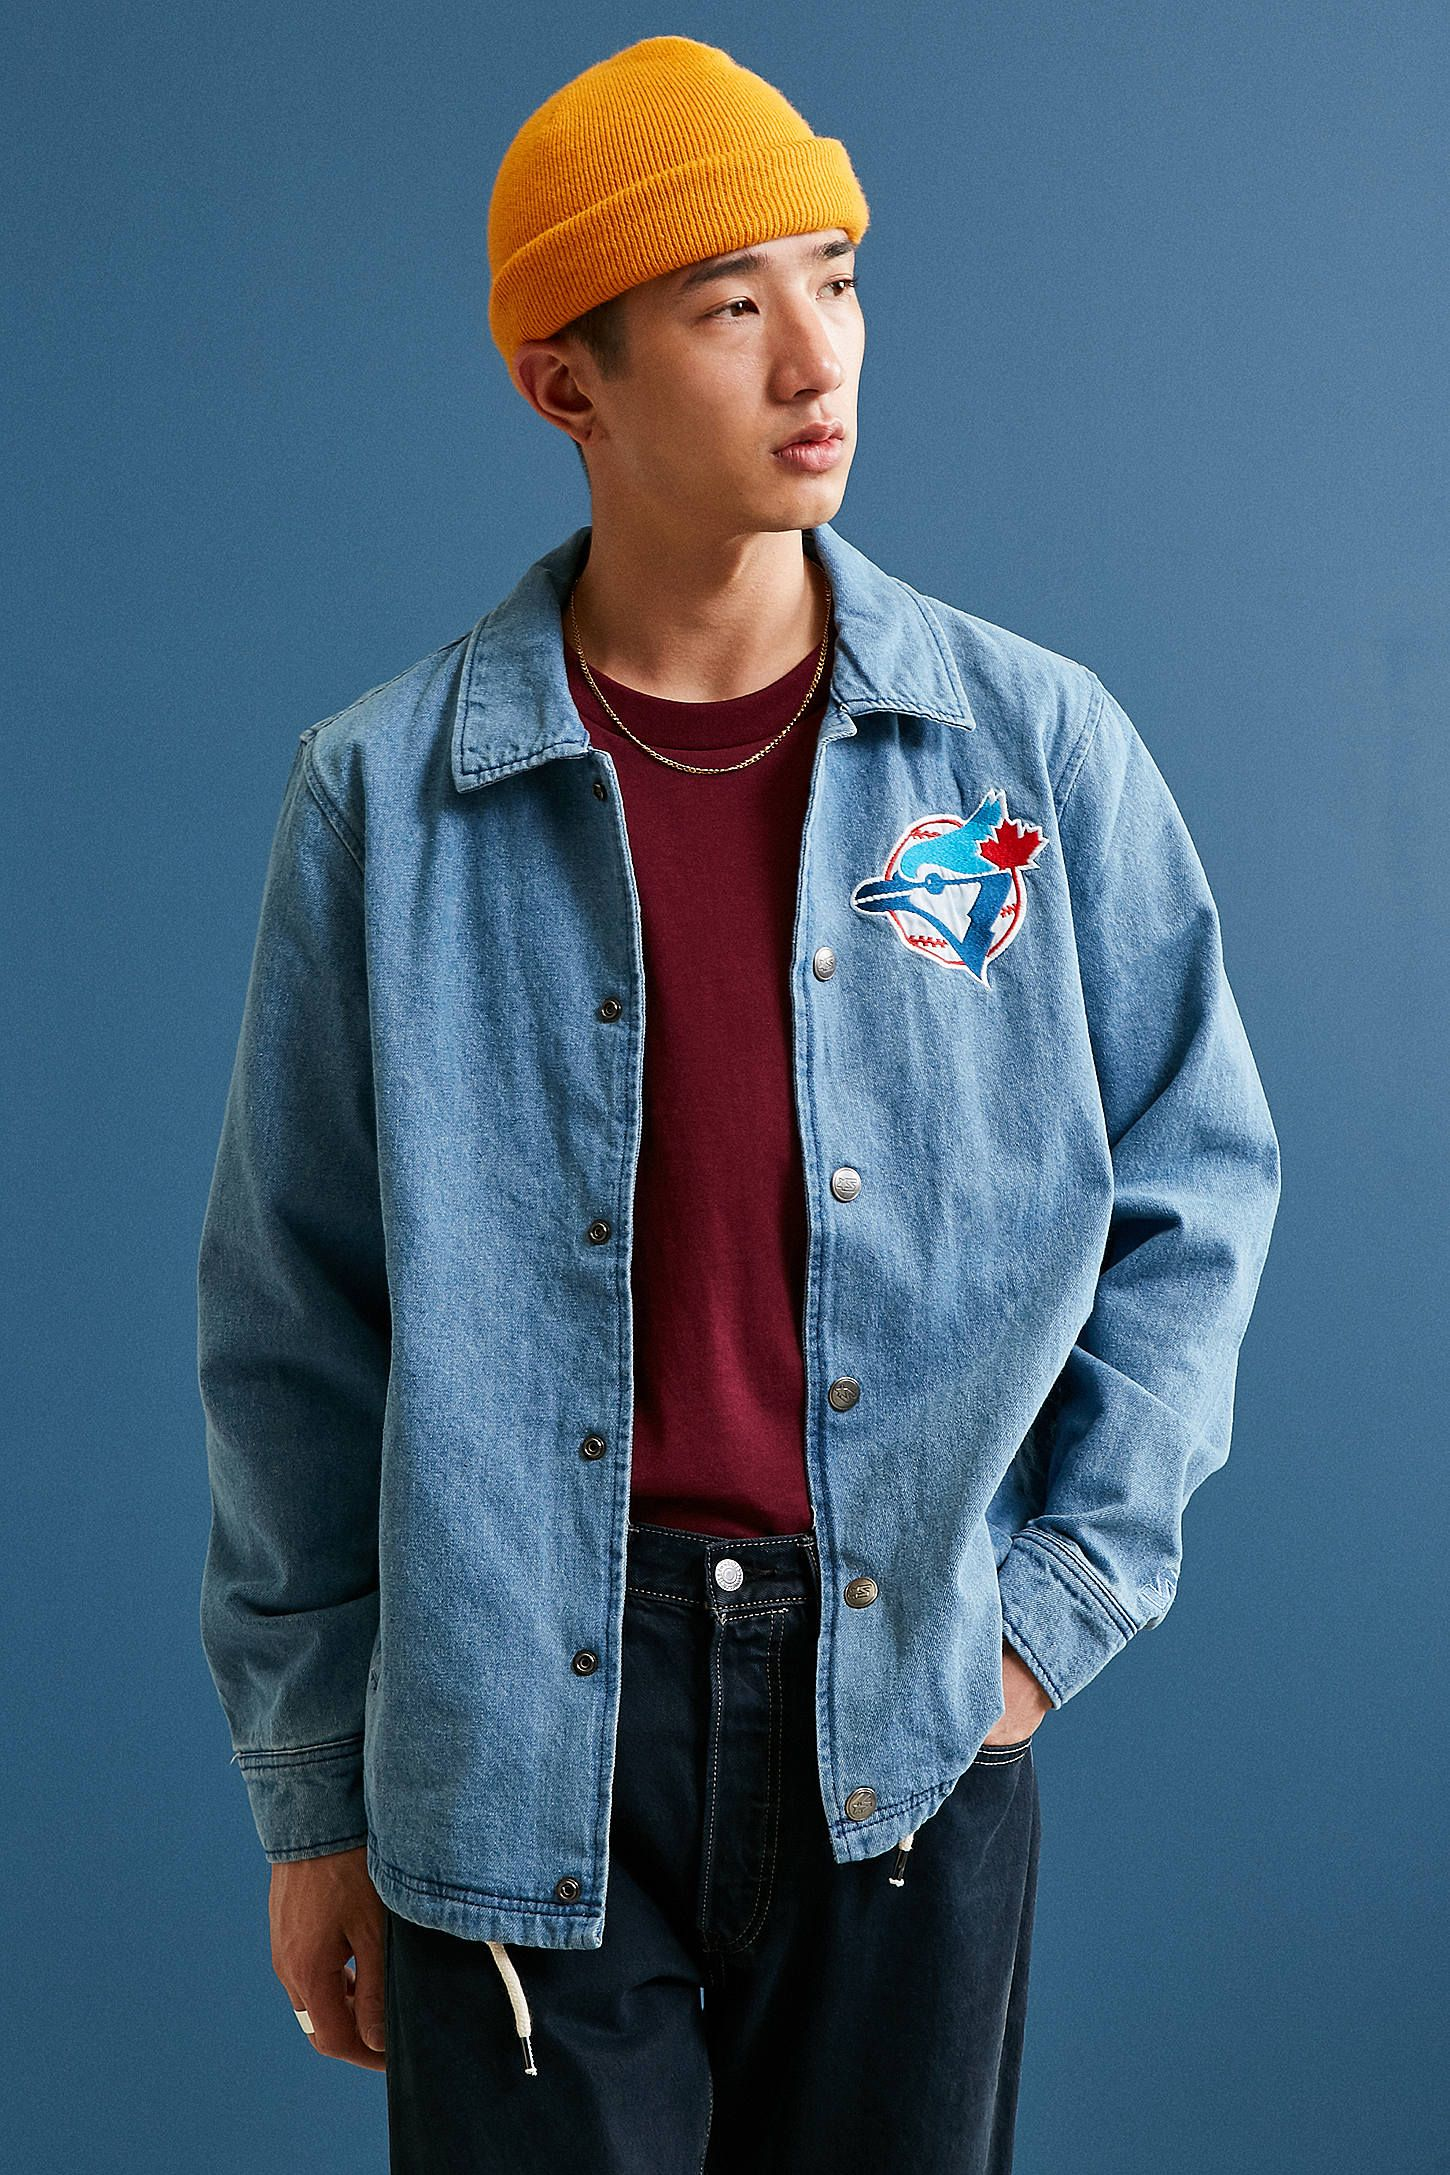 It is a graphic of Adaptable Starter Black Label Jacket Urban Outfitters